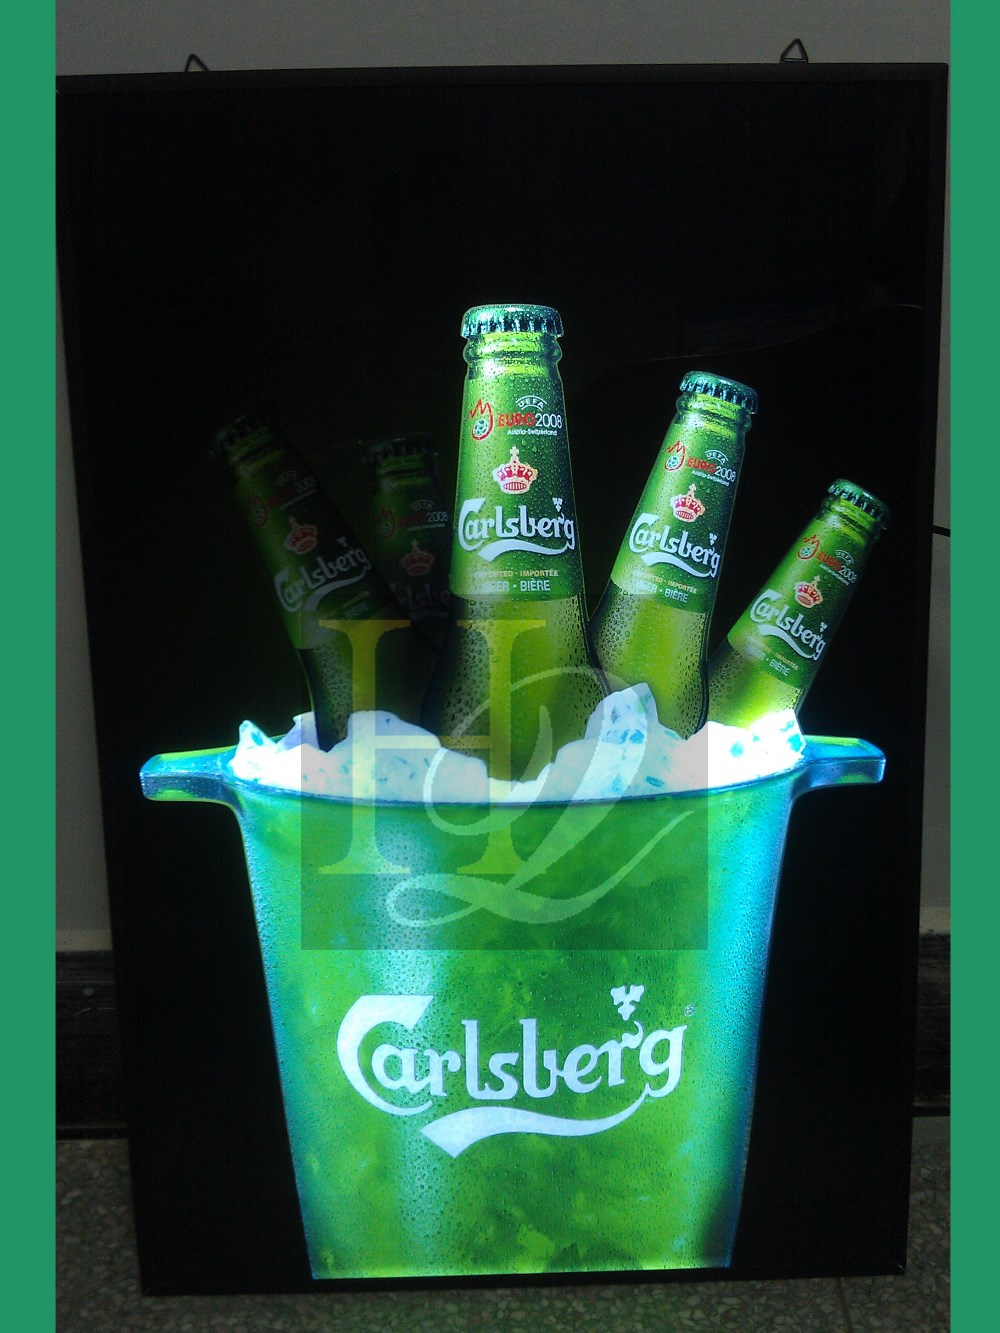 Guangzhou supplier acrylic beer bottle display led light display with handle lighting box